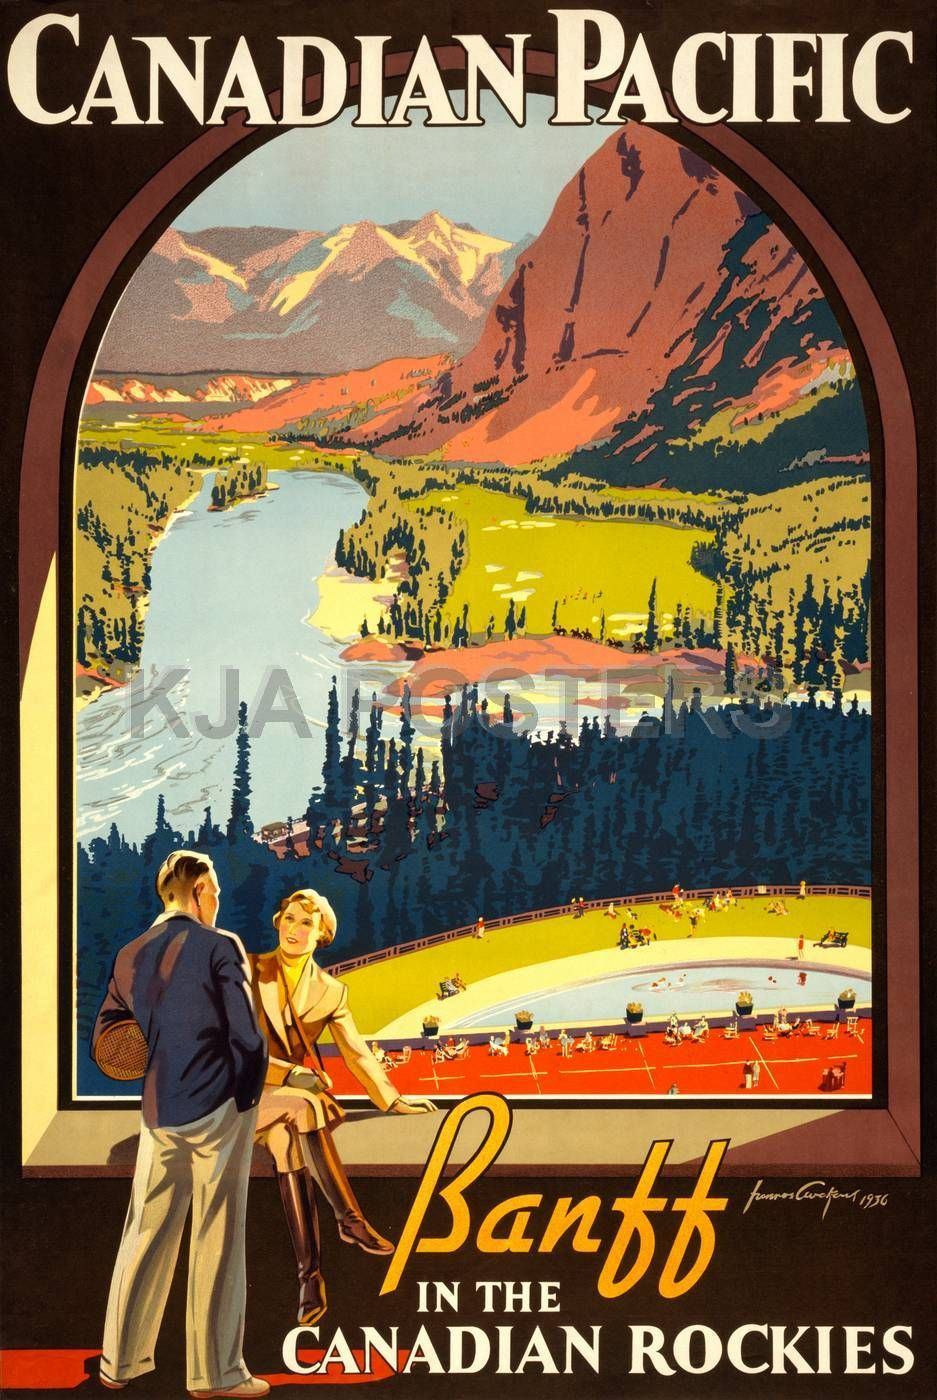 Travel Canadian Pacific Vintage Canada Travel Wall Decor Art Poster Print